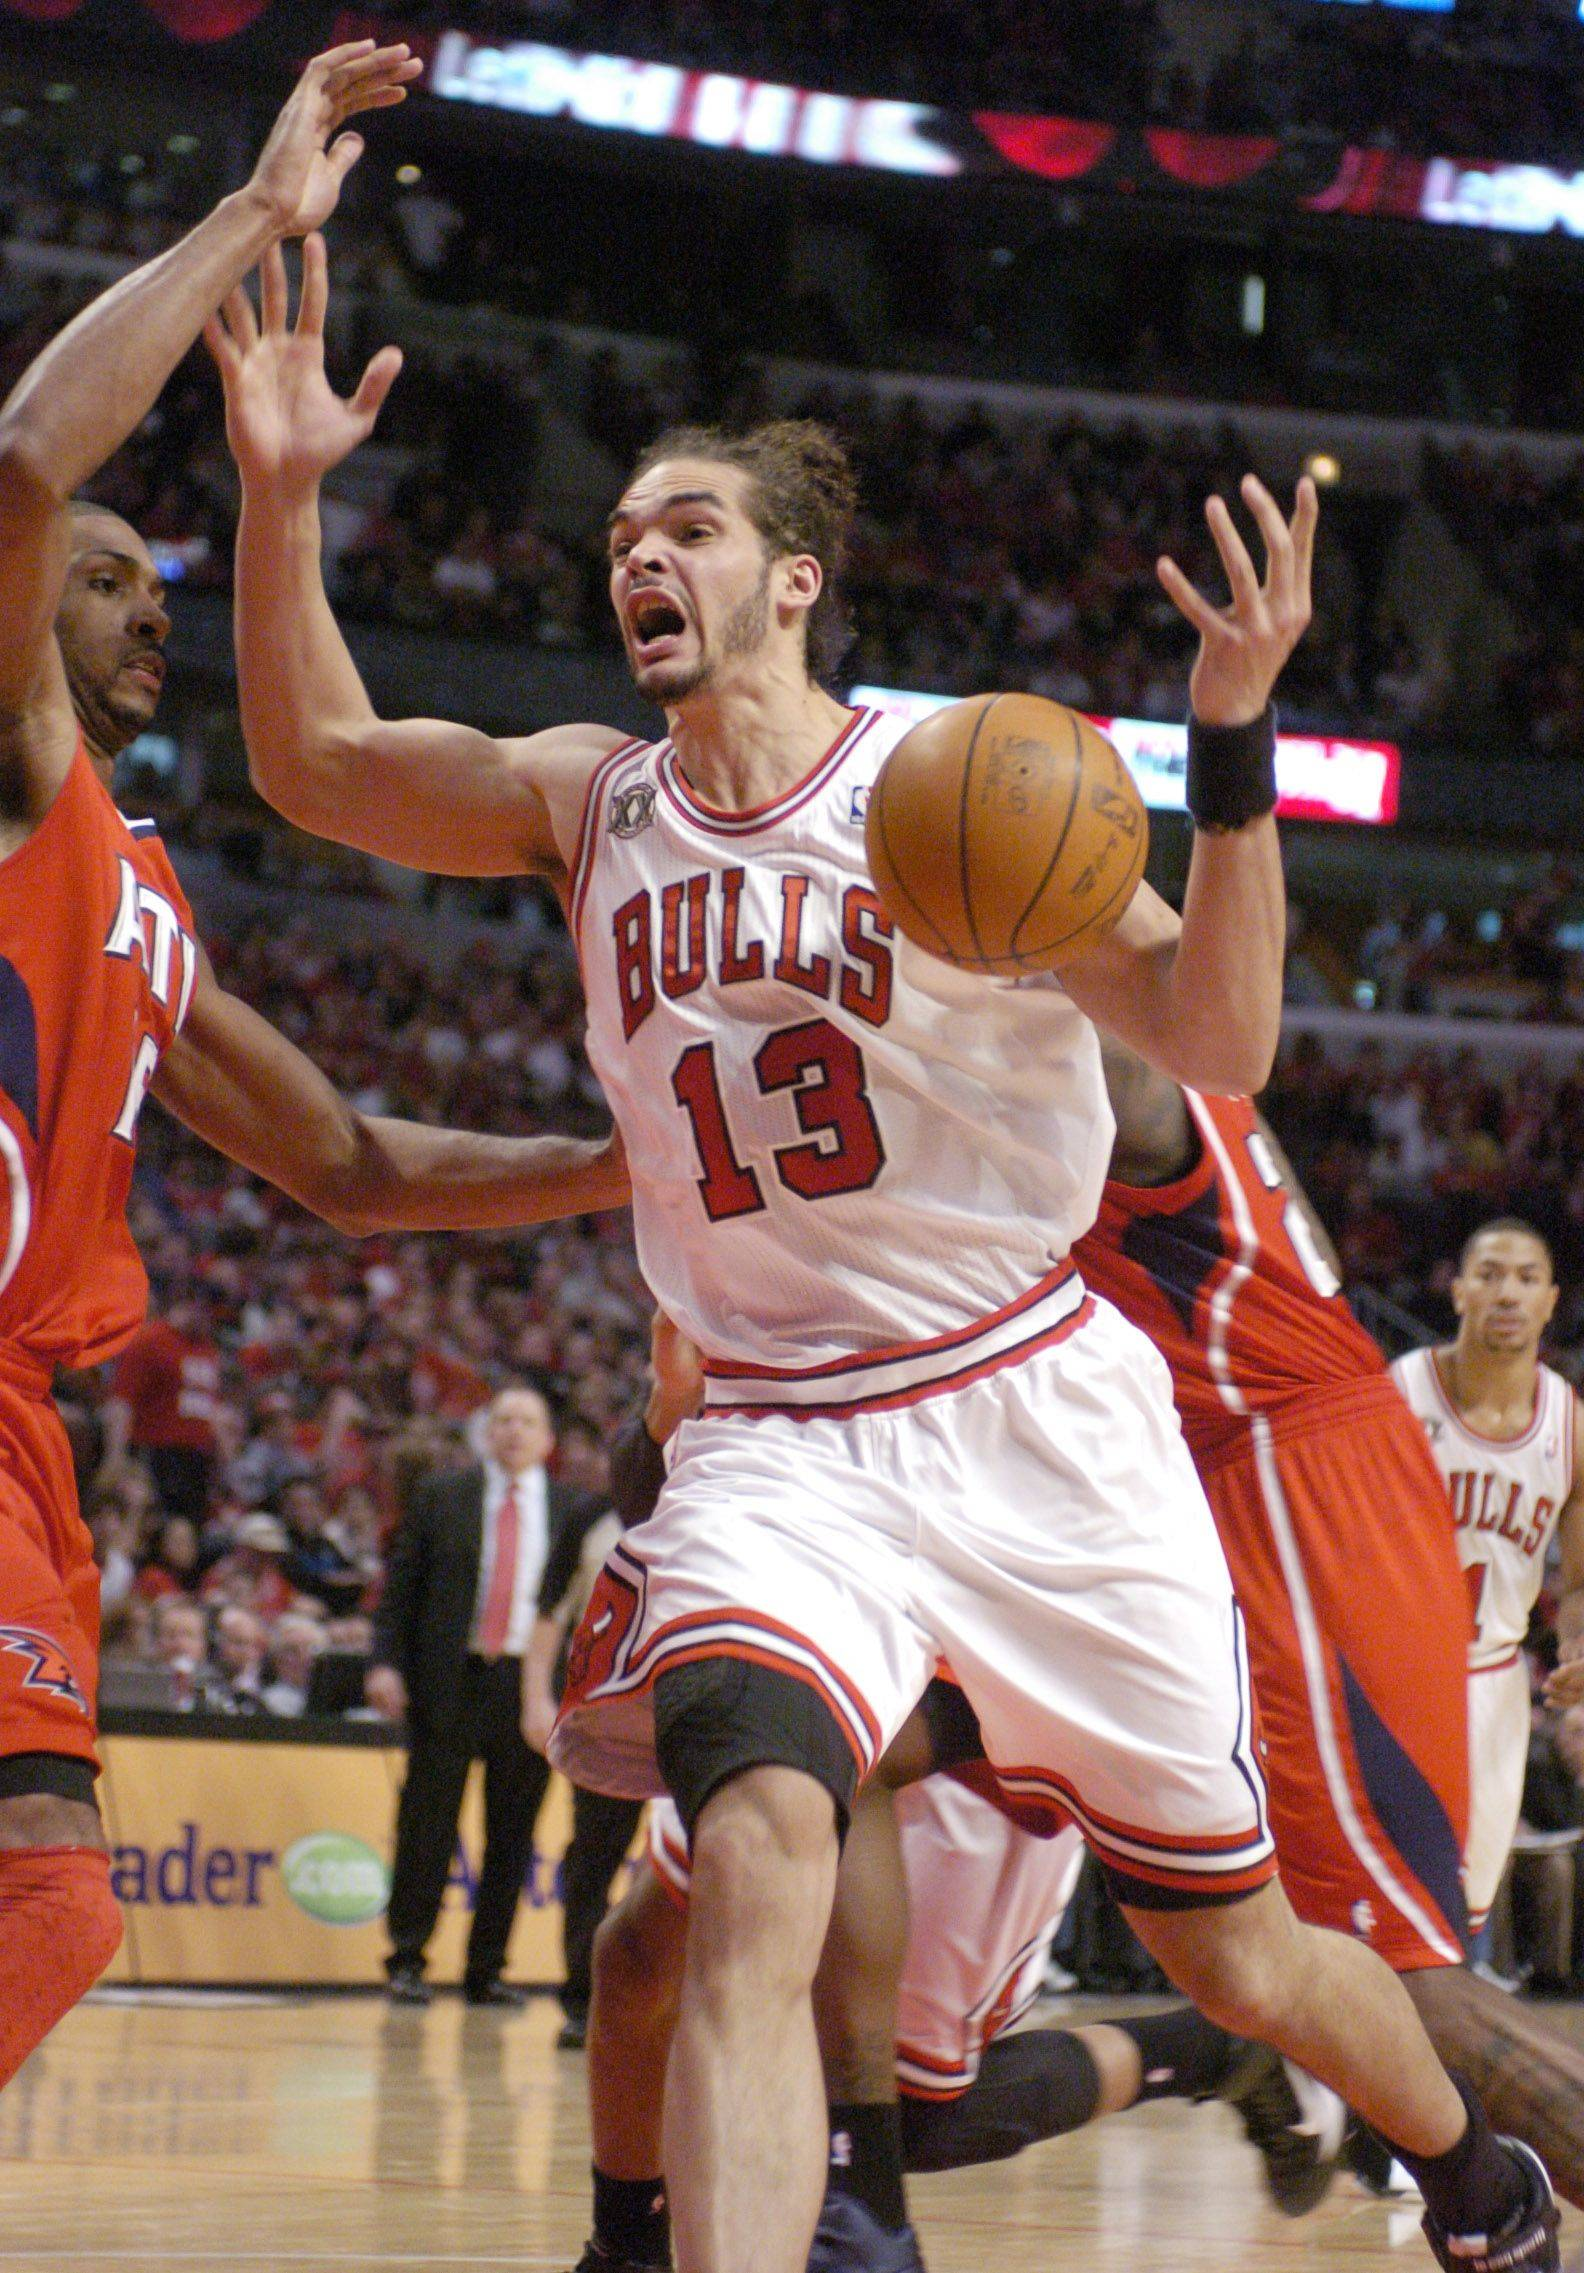 Joakim Noah scored 19 points and grabbed 14 rebounds Wednesday against the Hawks. His performance earned effusive praise from Bulls coach Tom Thibodeau.